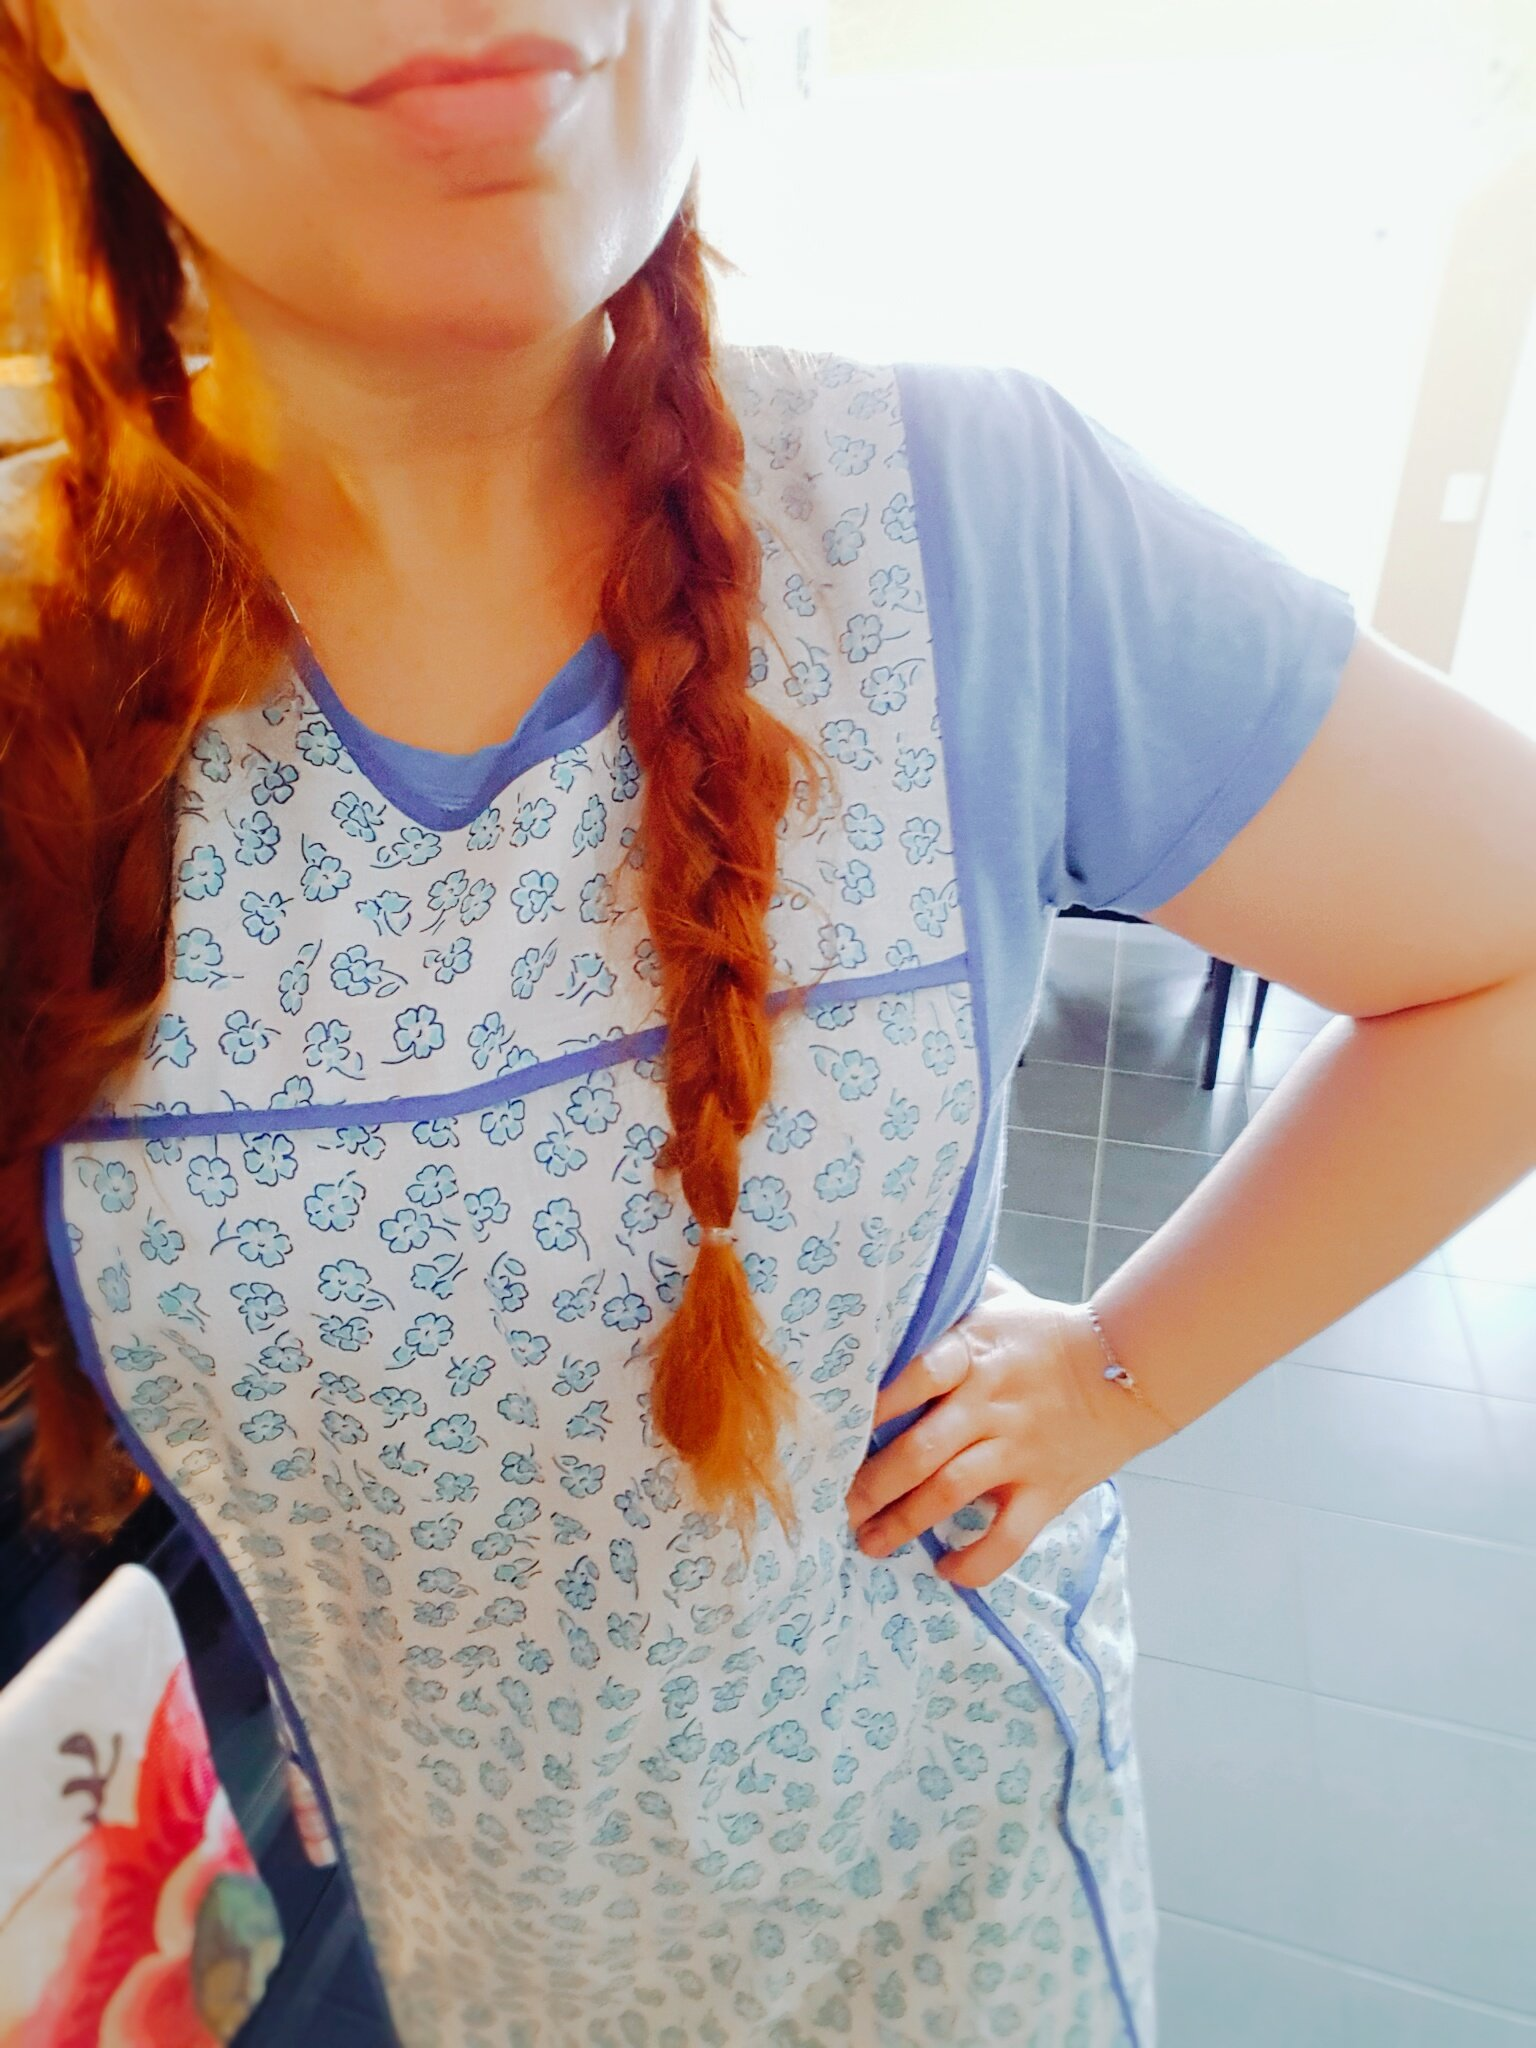 Auntie Gamer On Twitter I M Such An Old Lady Trope Sad Better Start Cleaning Knitting I Even Wear My Gran S Pinny Apron From The 1940 S Official live stream of lucahjin! i m such an old lady trope sad